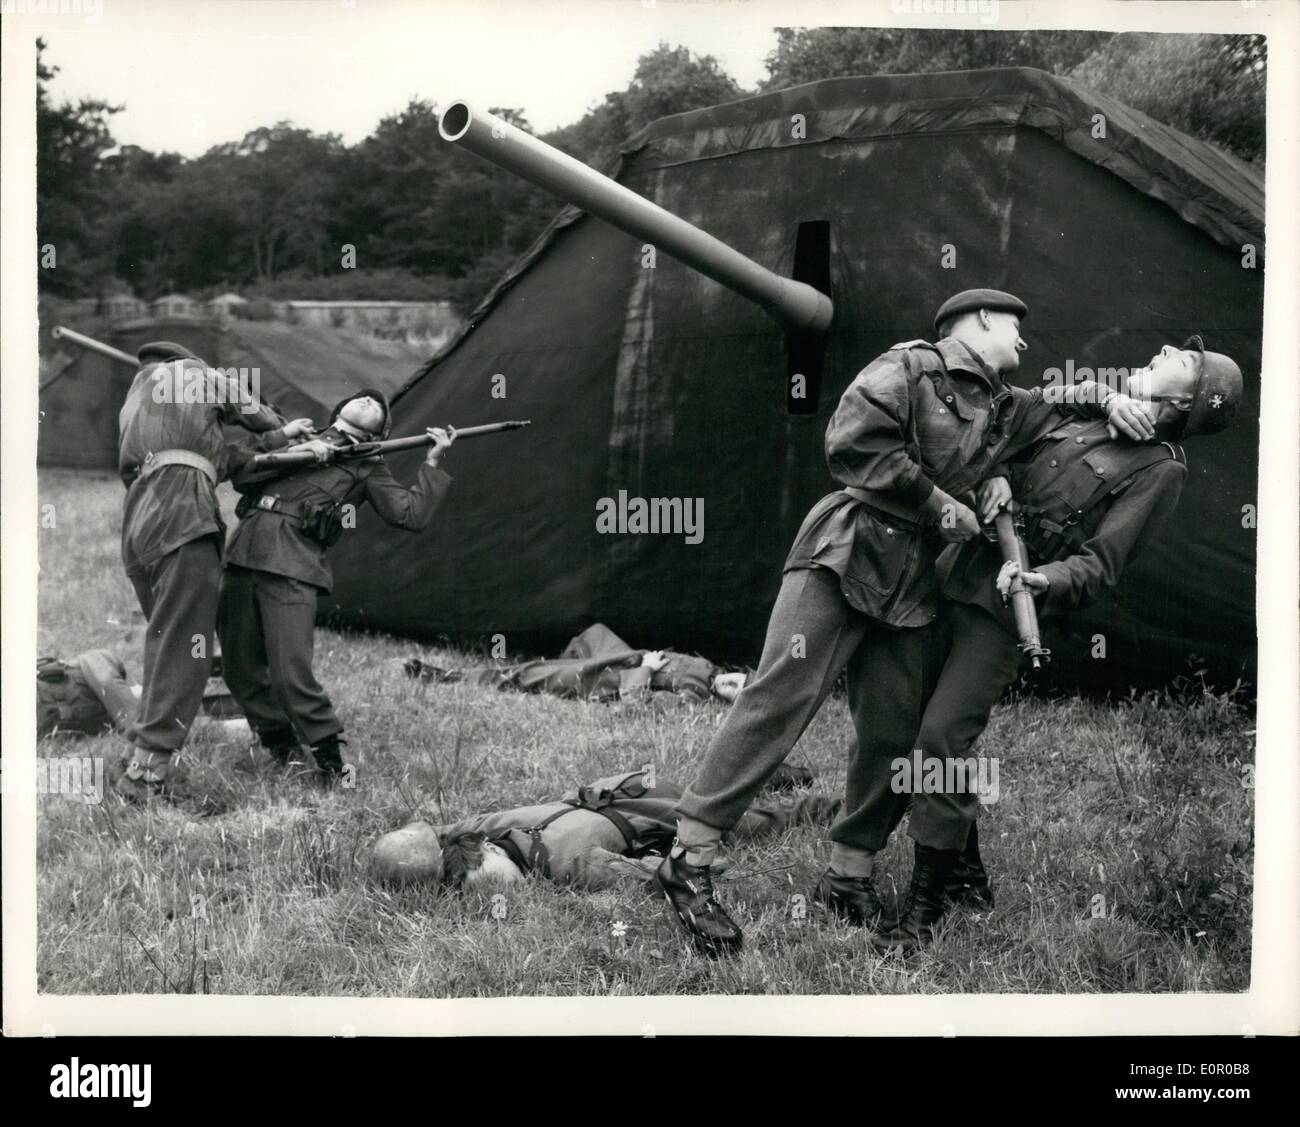 Jul. 07, 1957 - Rehearsing battle scene for searchlight tattoo.: A rehearsal was held at Aldershot this morning of the battle scene of the White city searchlight tattoo. The scene shows the silencing of the Merville Battery by the coast of France on D-Day. Men in german uniforms took the part of the enemy. Photo shows memebers of the Srd. Battalion parachute right after having made a ''Parachut landing'' attack a German gun strongpoint during the rehearsal thi morning. - Stock Image